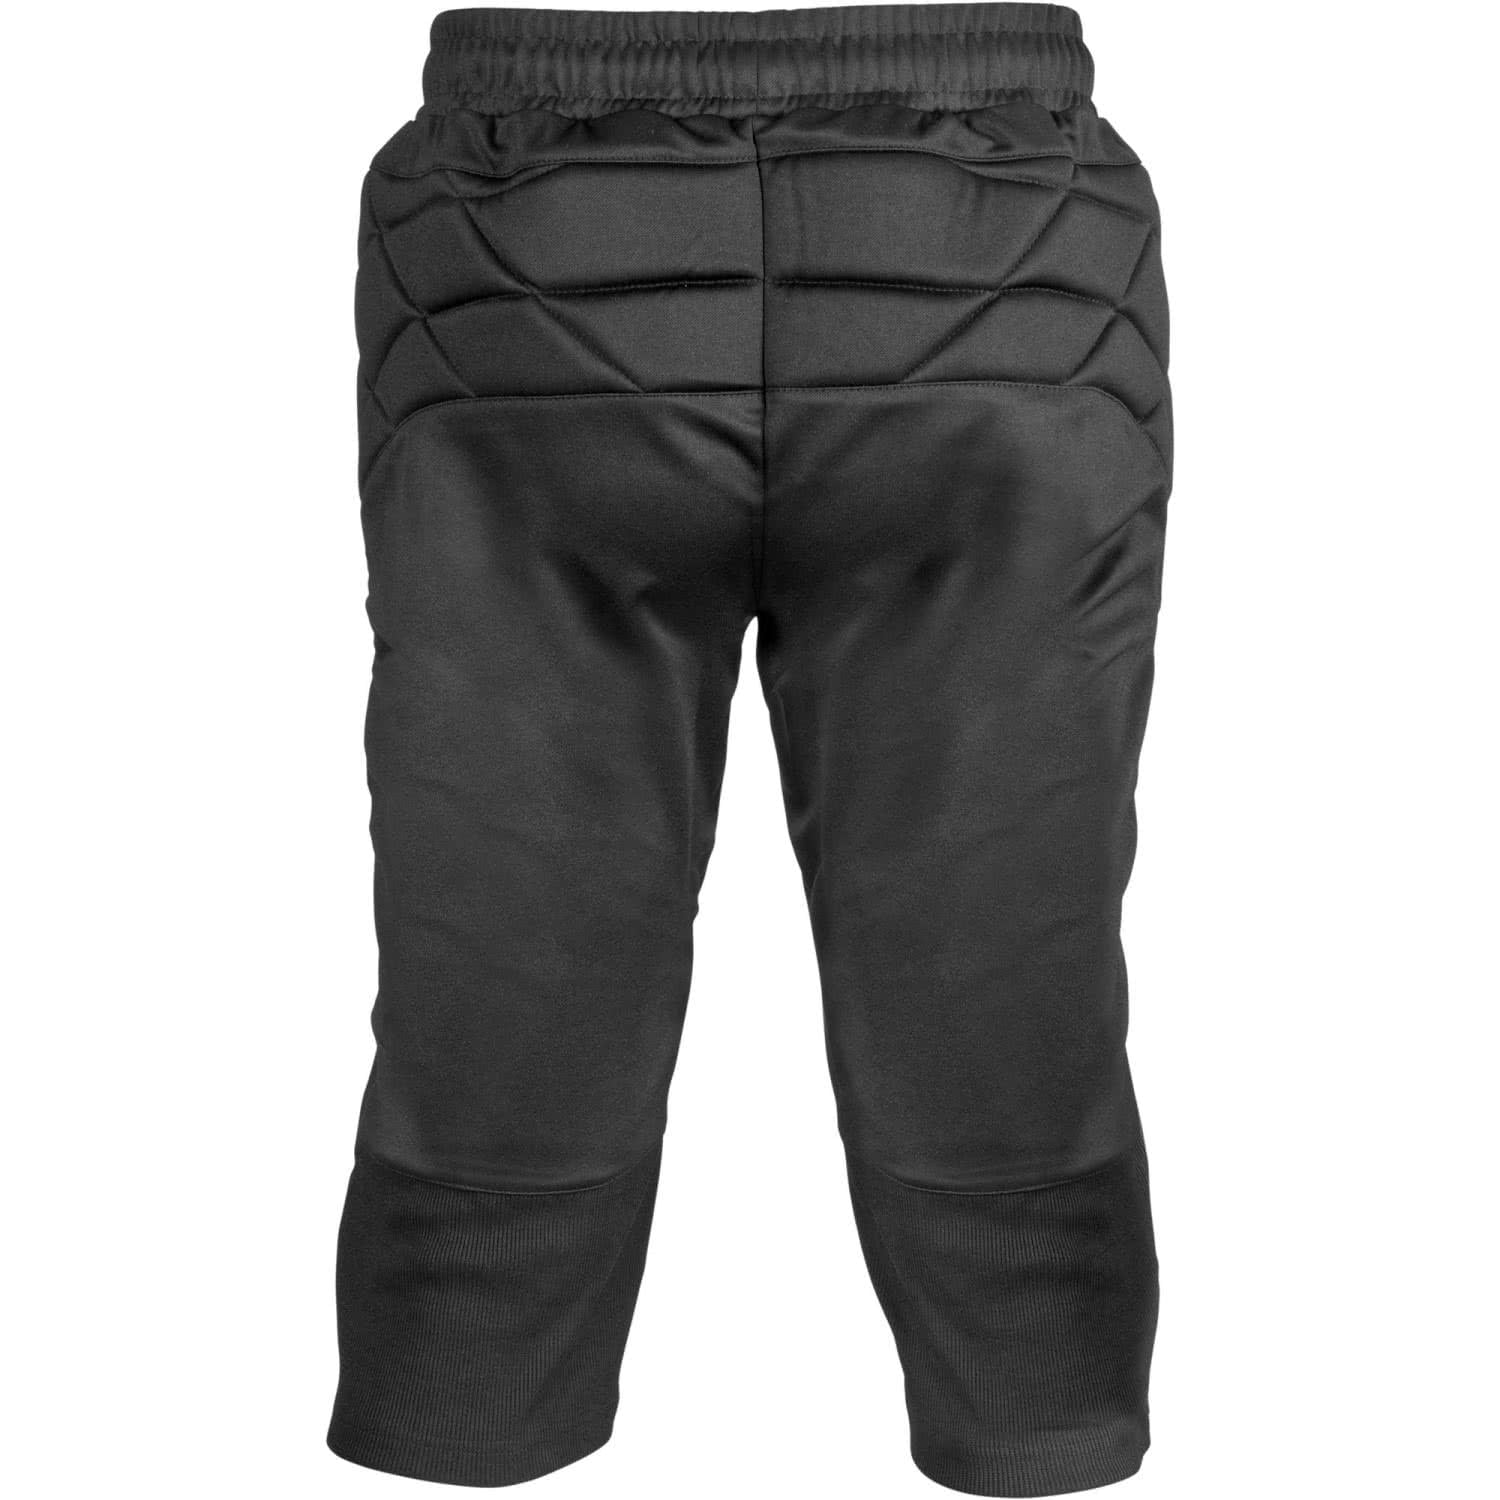 Reusch Torwarthose 360 Protection Short 3/4 3517201